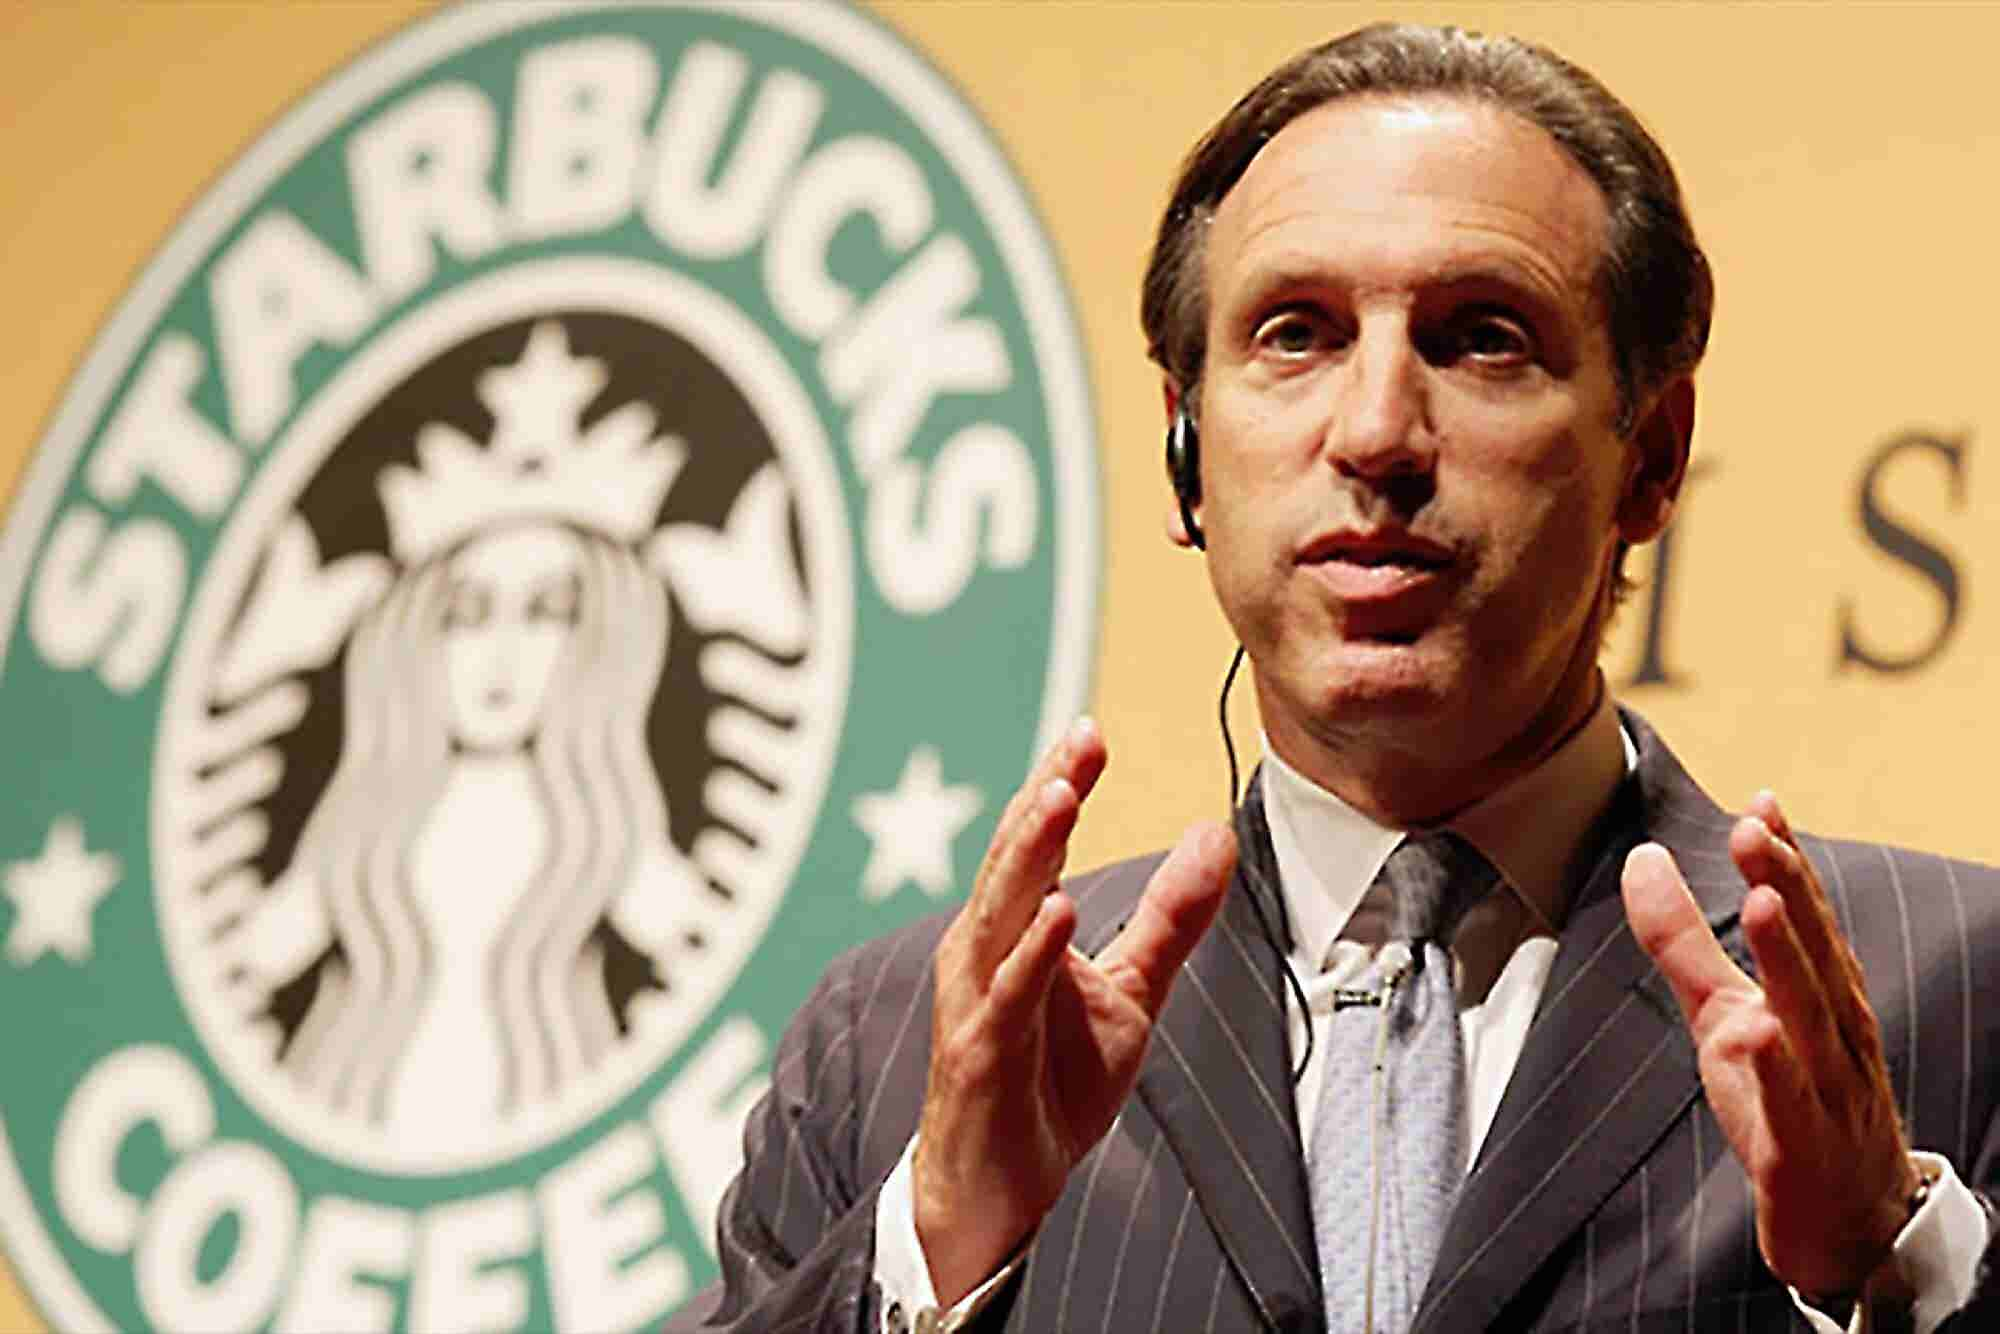 Starbucks CEO Howard Schultz Steps Down From Square's Board of Directors